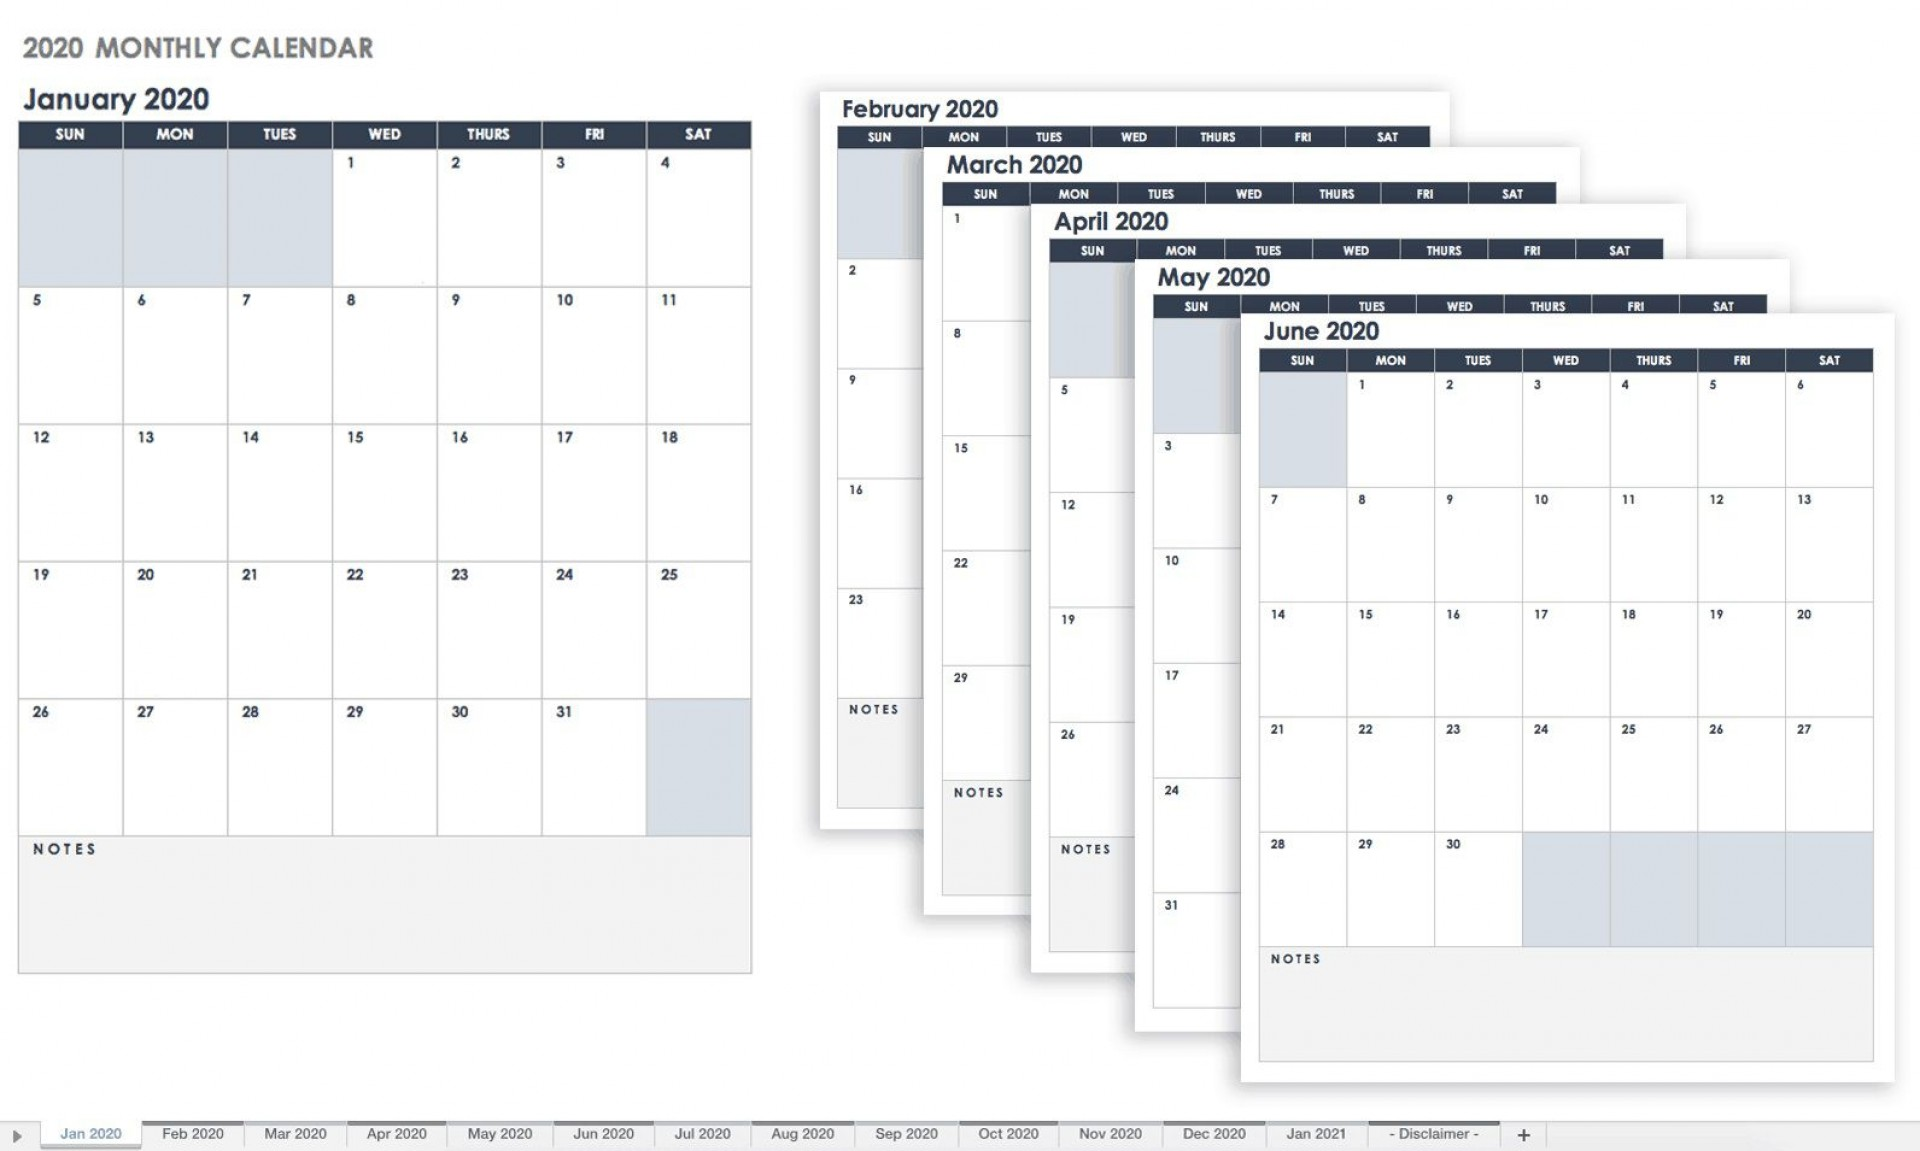 004 Dreaded Google Sheet Calendar Template 2020 Sample  Monthly And 2021 2020-211920